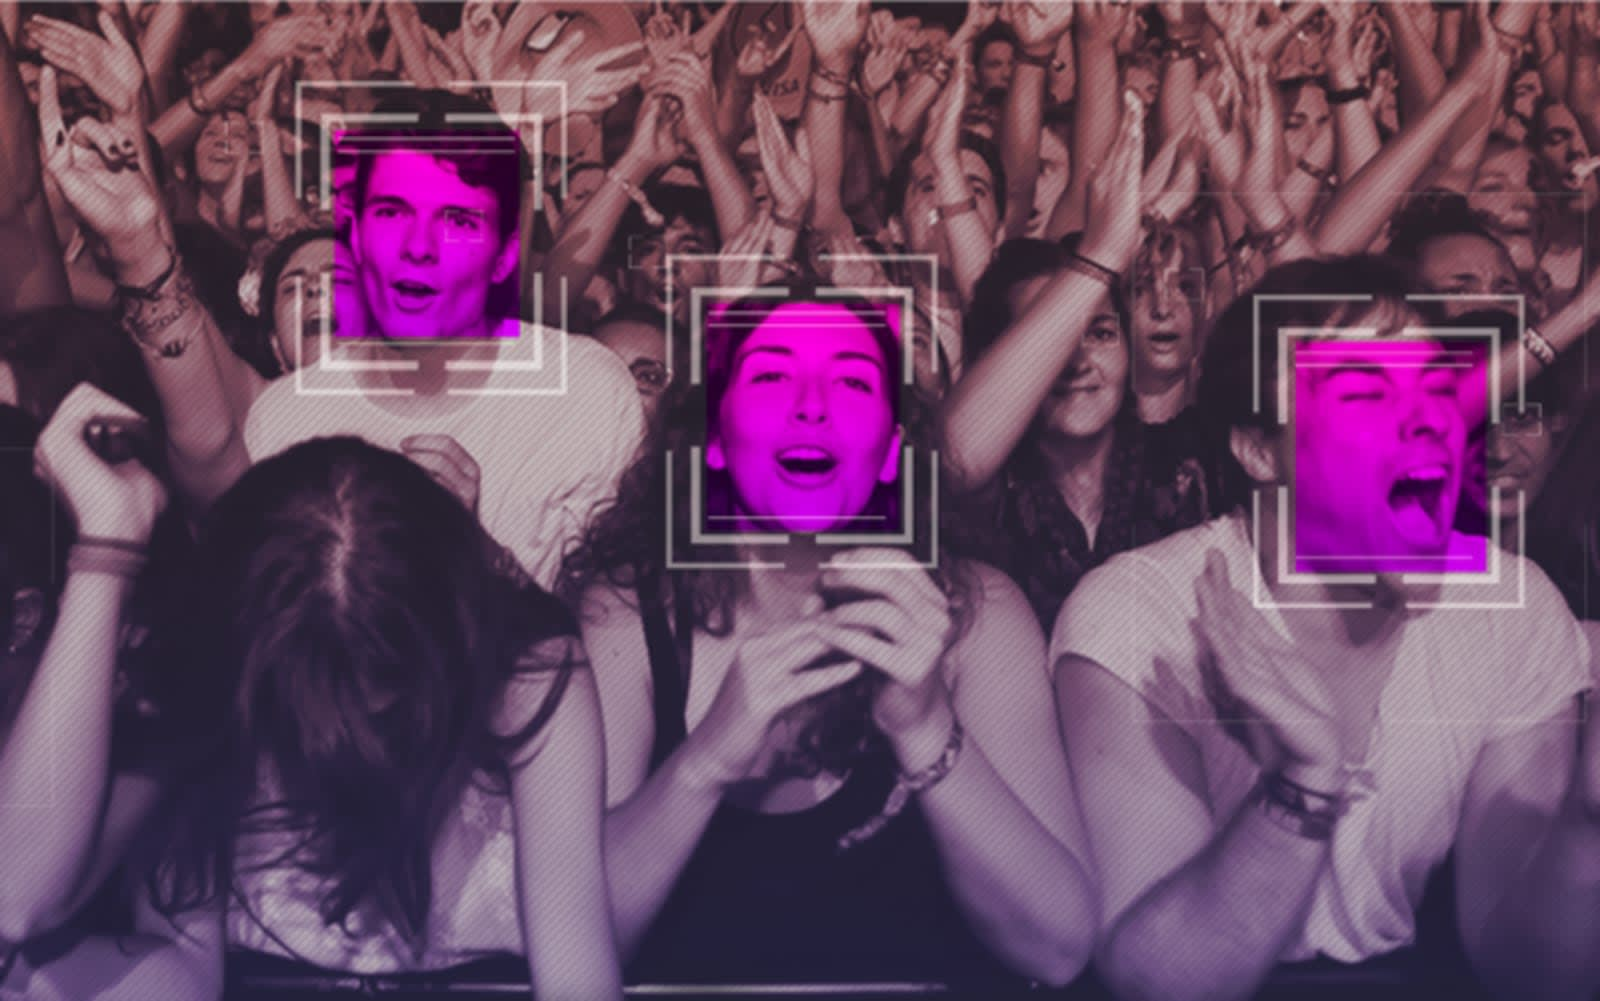 40 music festivals pledge not to use facial recognition